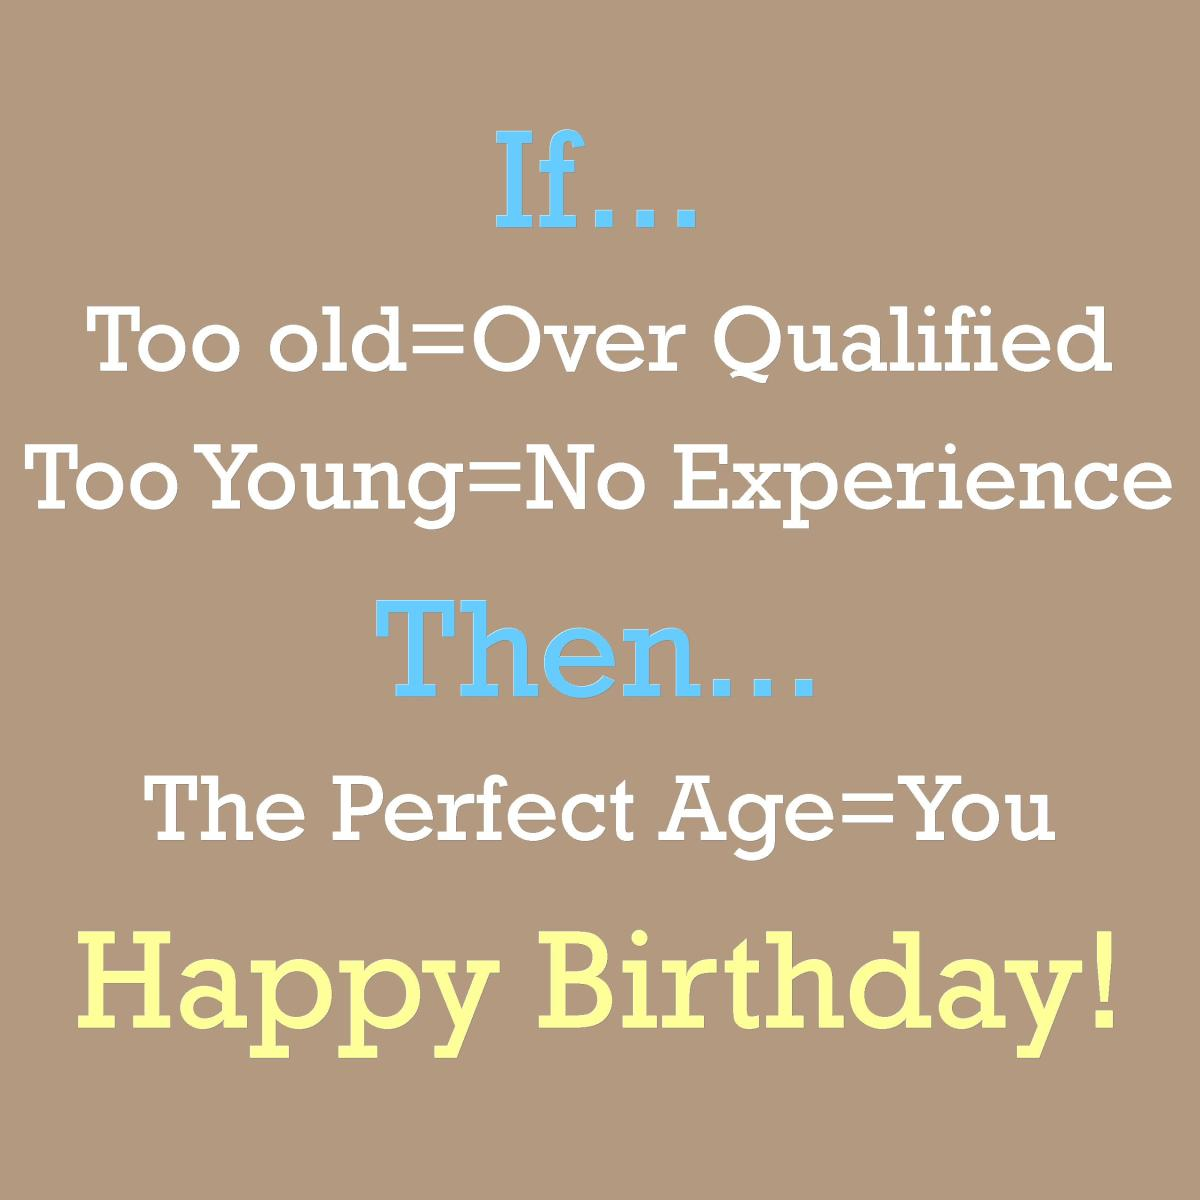 Birthday Messages and Quotes to Write in a Card | Holidappy